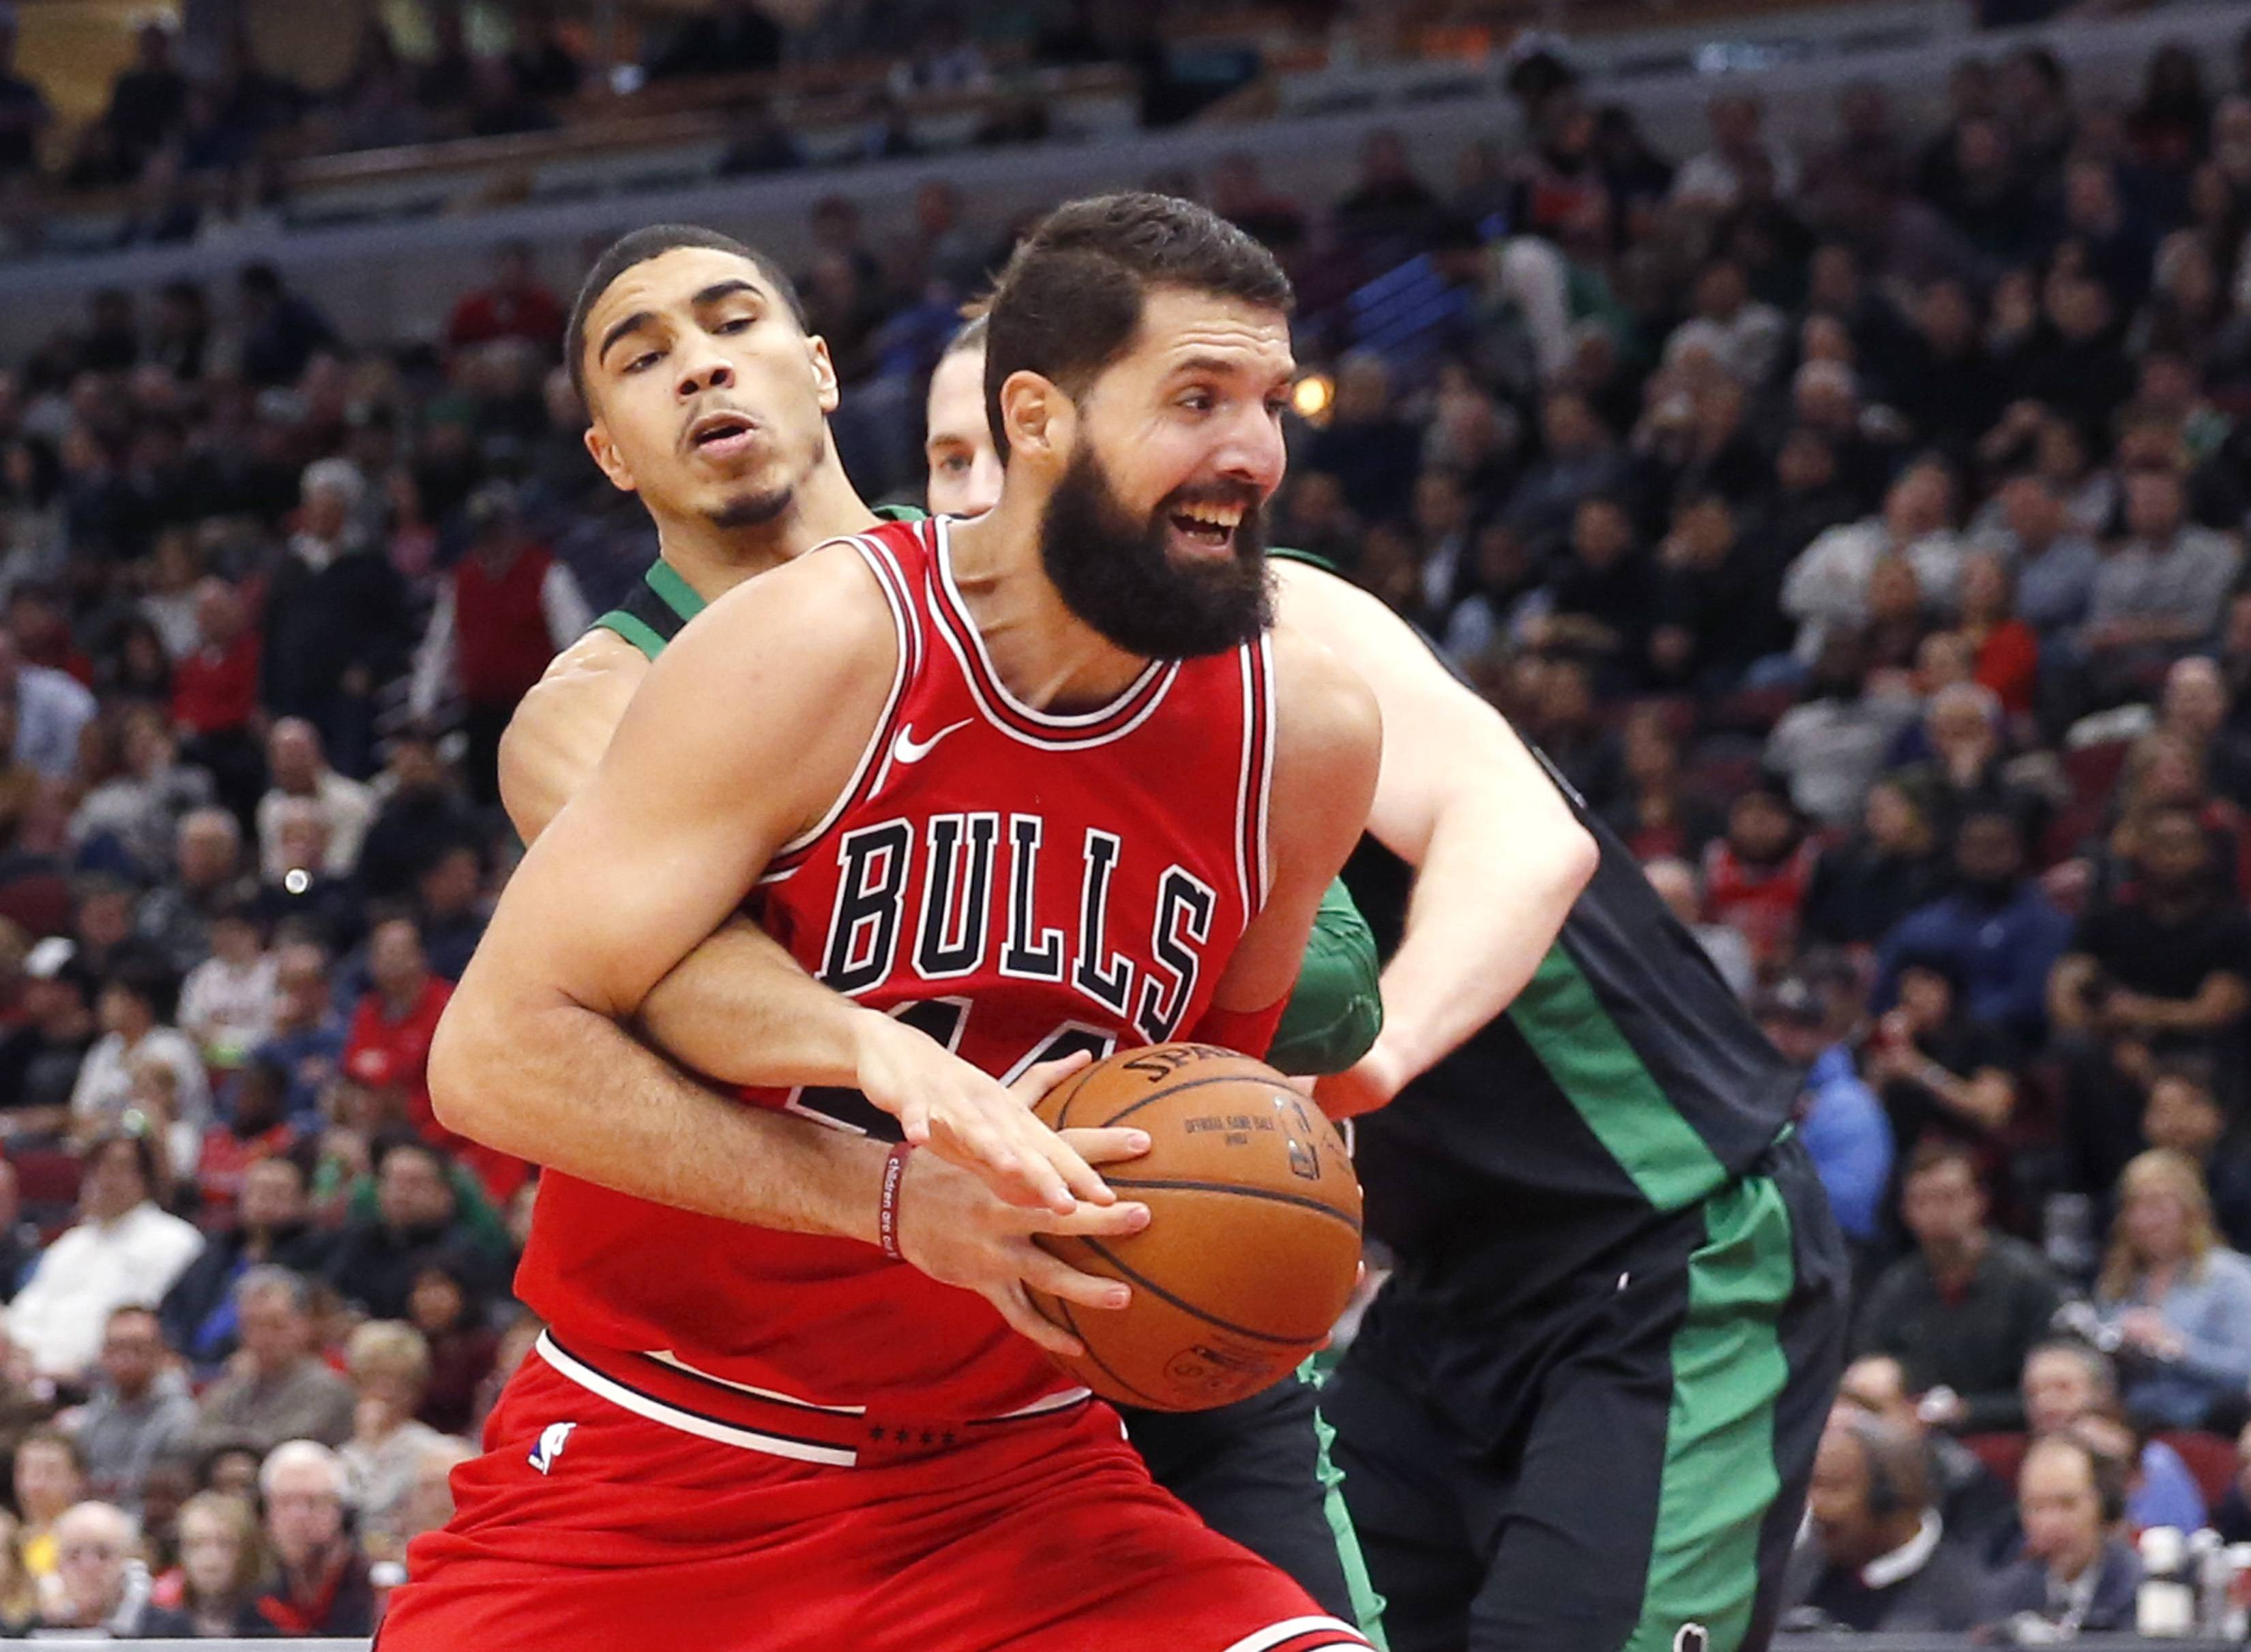 Chicago Bulls' Nikola Mirotic, right, is fouled by Boston Celtics' Jayson Tatum during the second half of an NBA basketball game Monday, Dec. 11, 2017, in Chicago. (AP Photo/Charles Rex Arbogast)